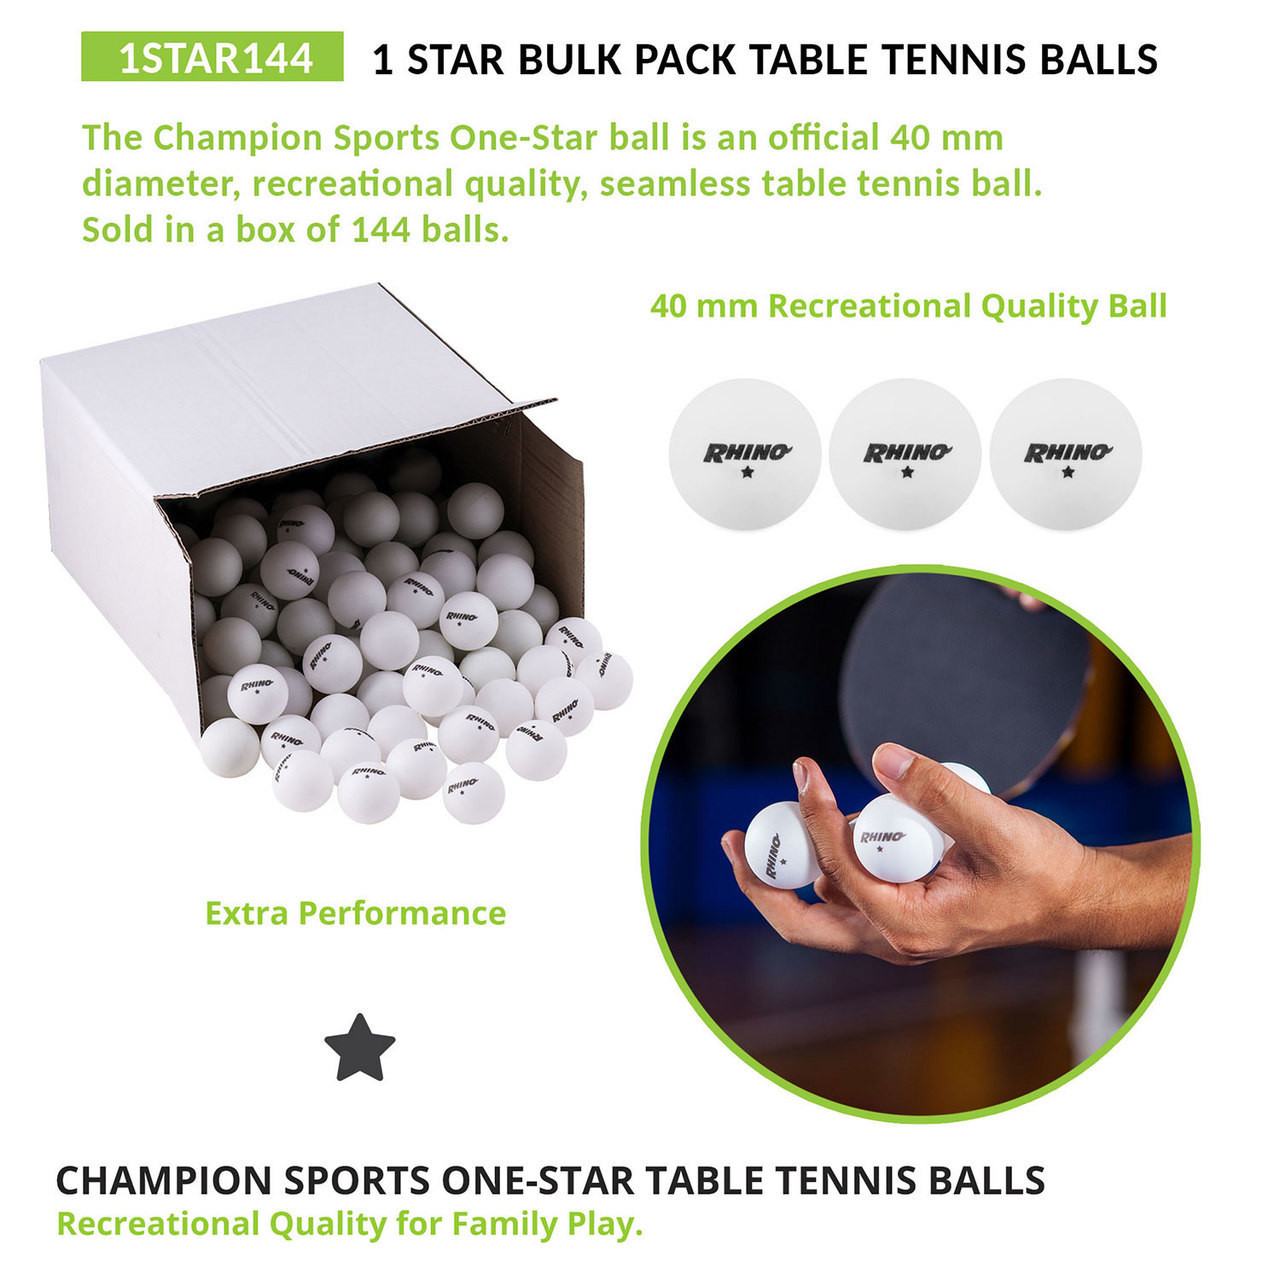 Champion Sports 1 Star Table Tennis Balls - 1 Gross